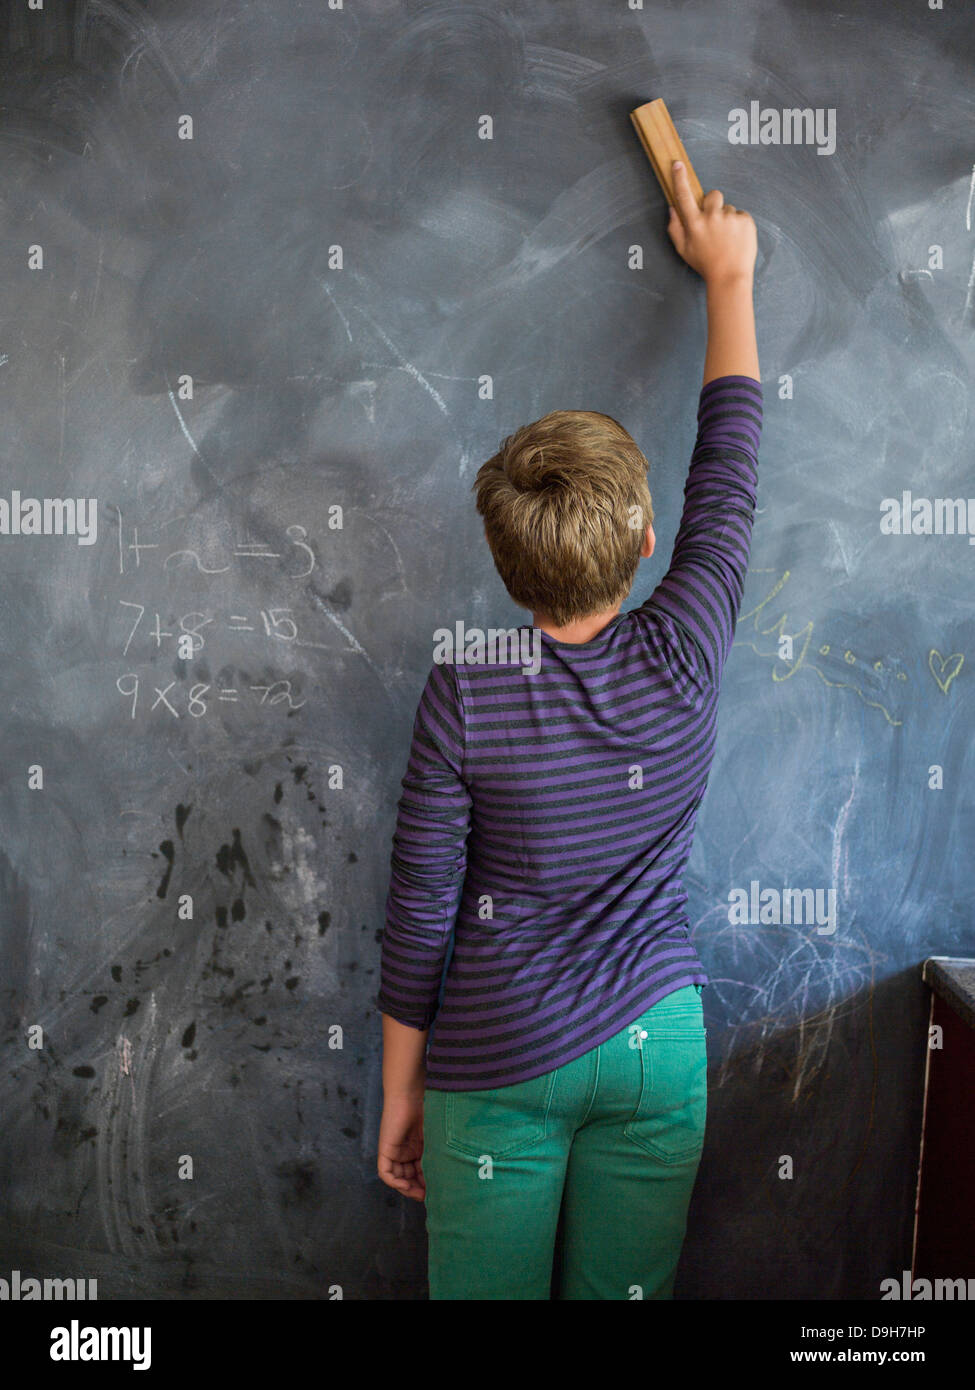 Boy cleaning blackboard with a duster in a classroom - Stock Image